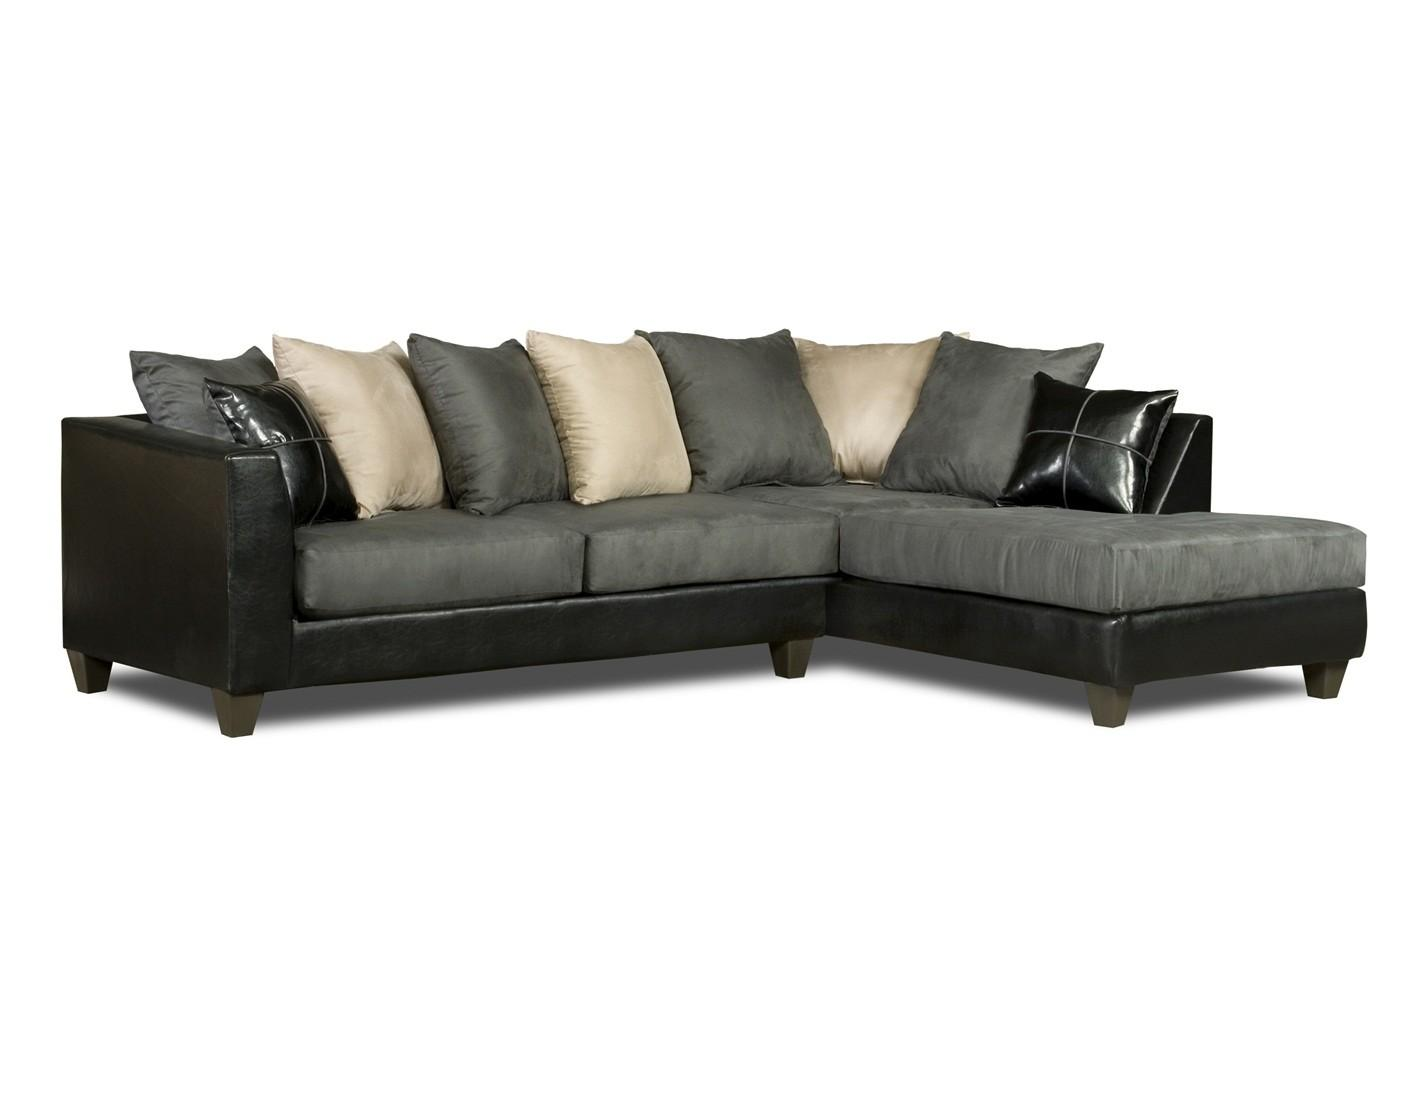 Black Gray White Sectional Sofa Loose Pillow Back 4184